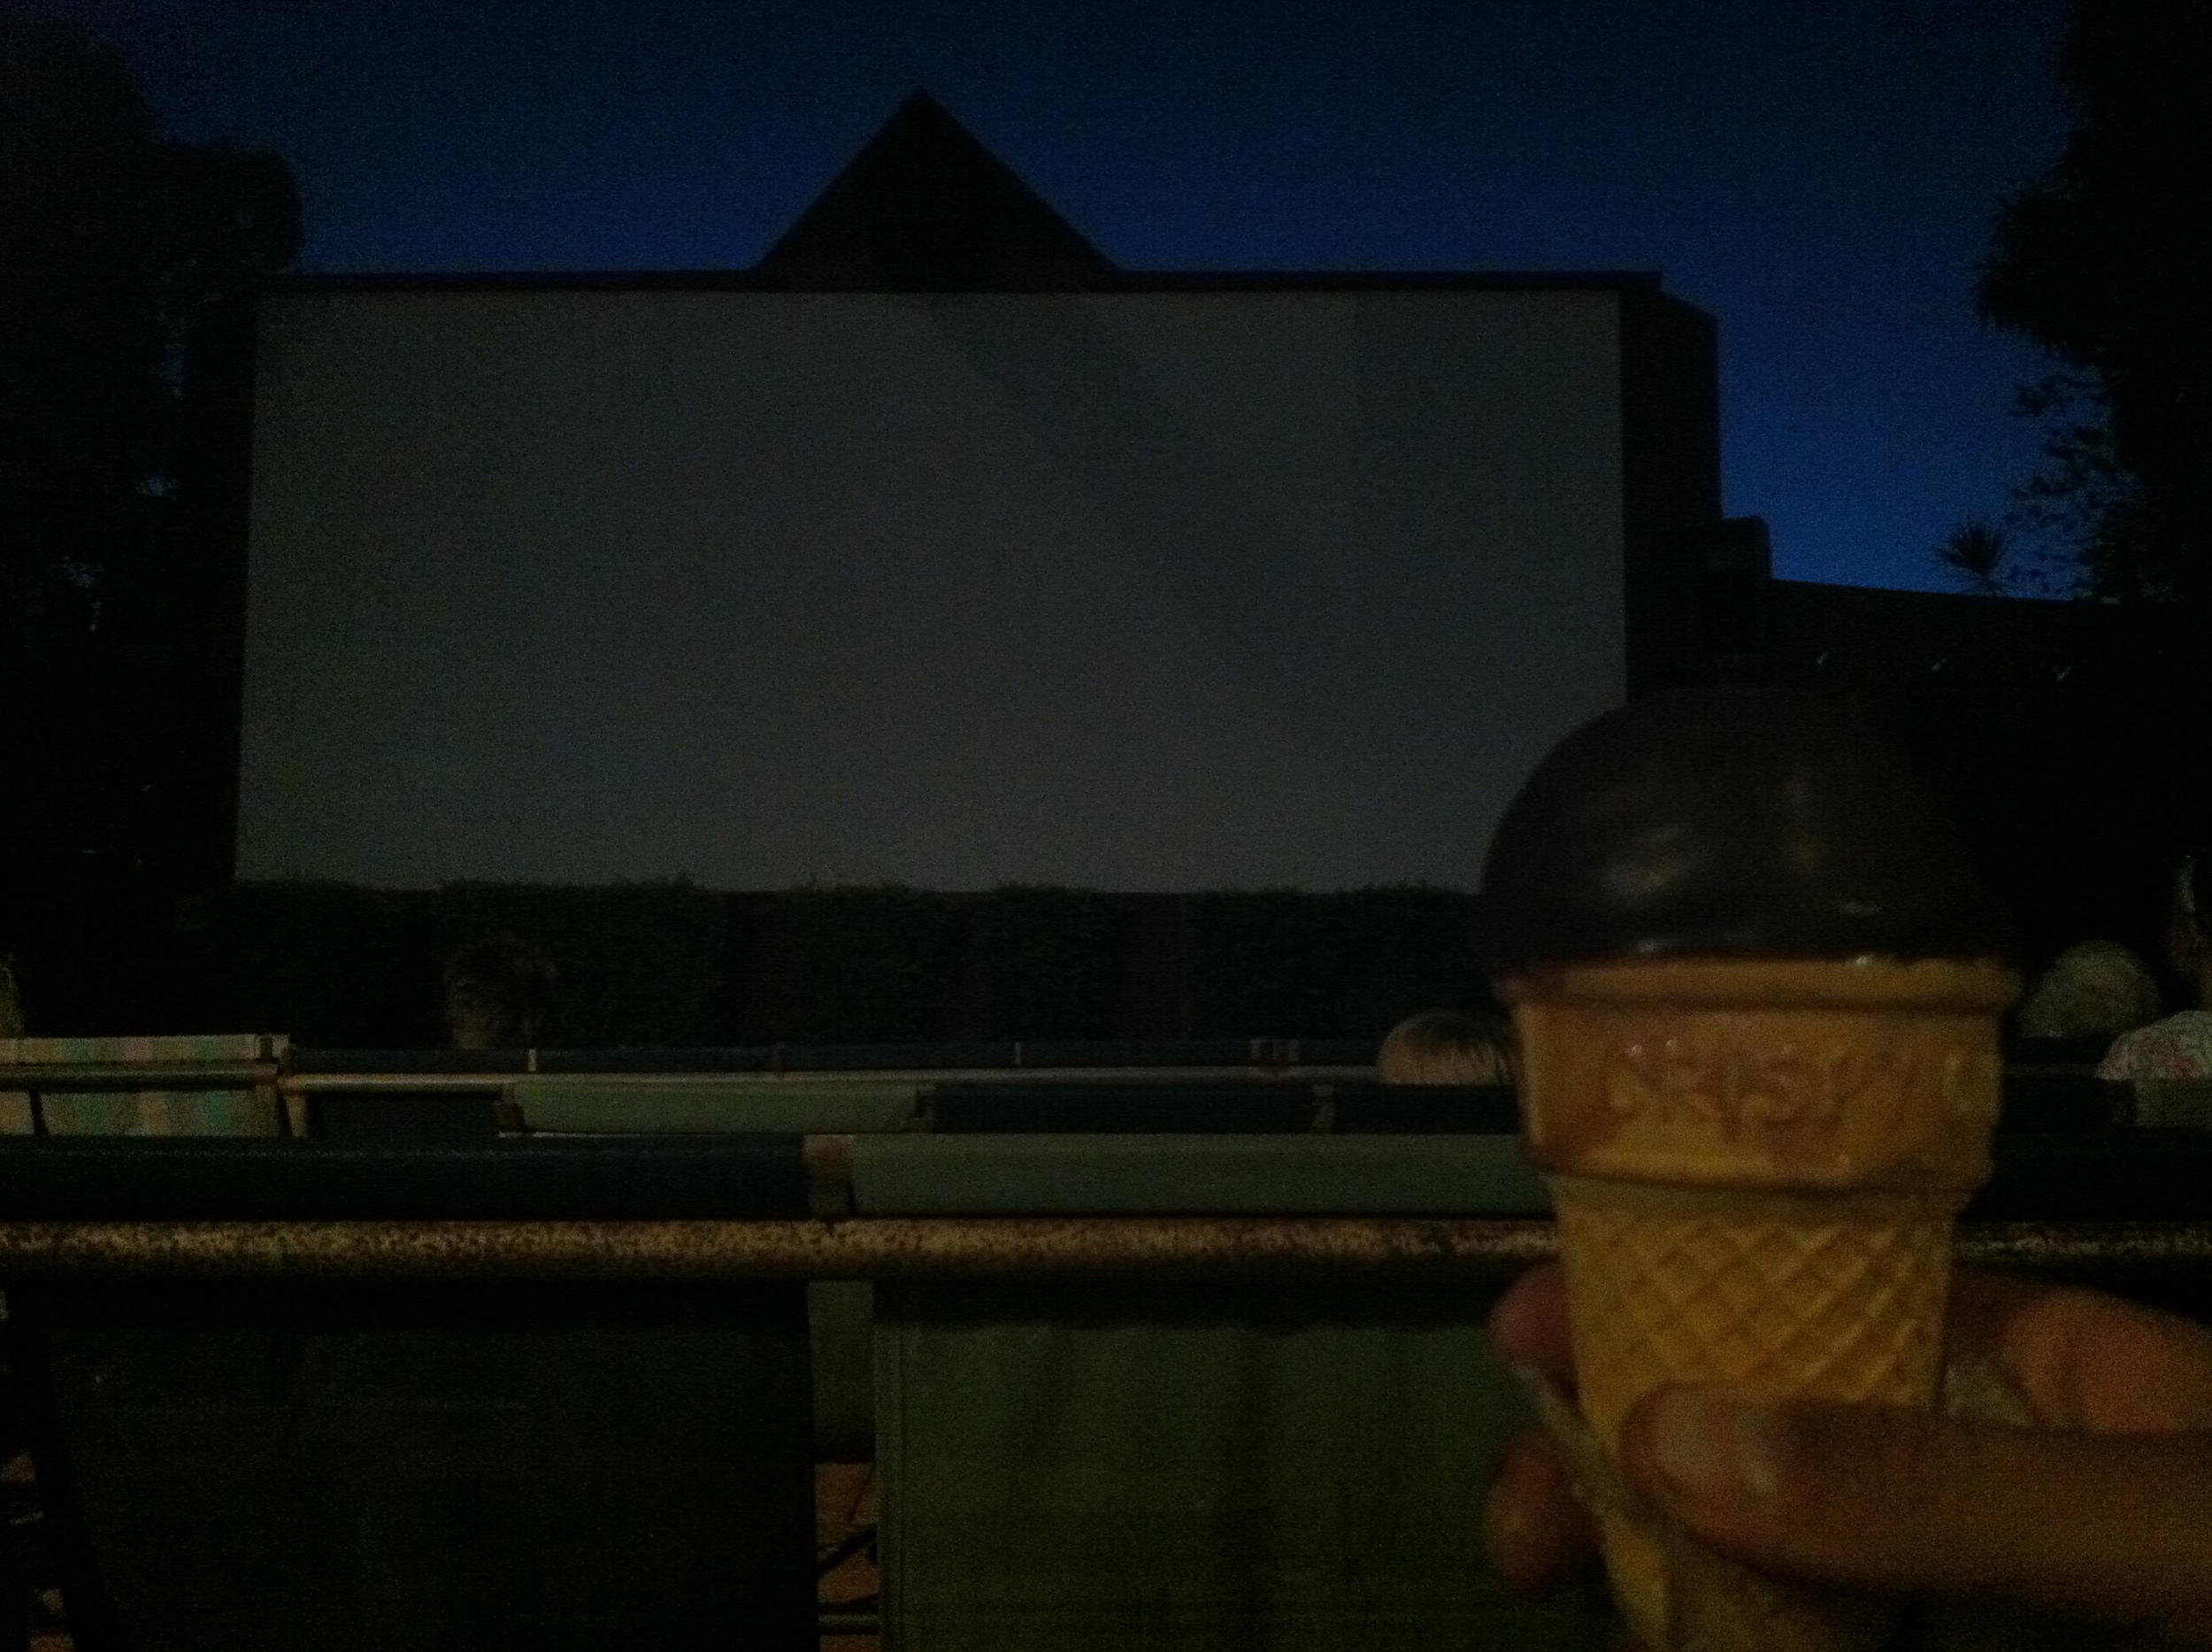 Enjoying a choc top at Sun Pictures.